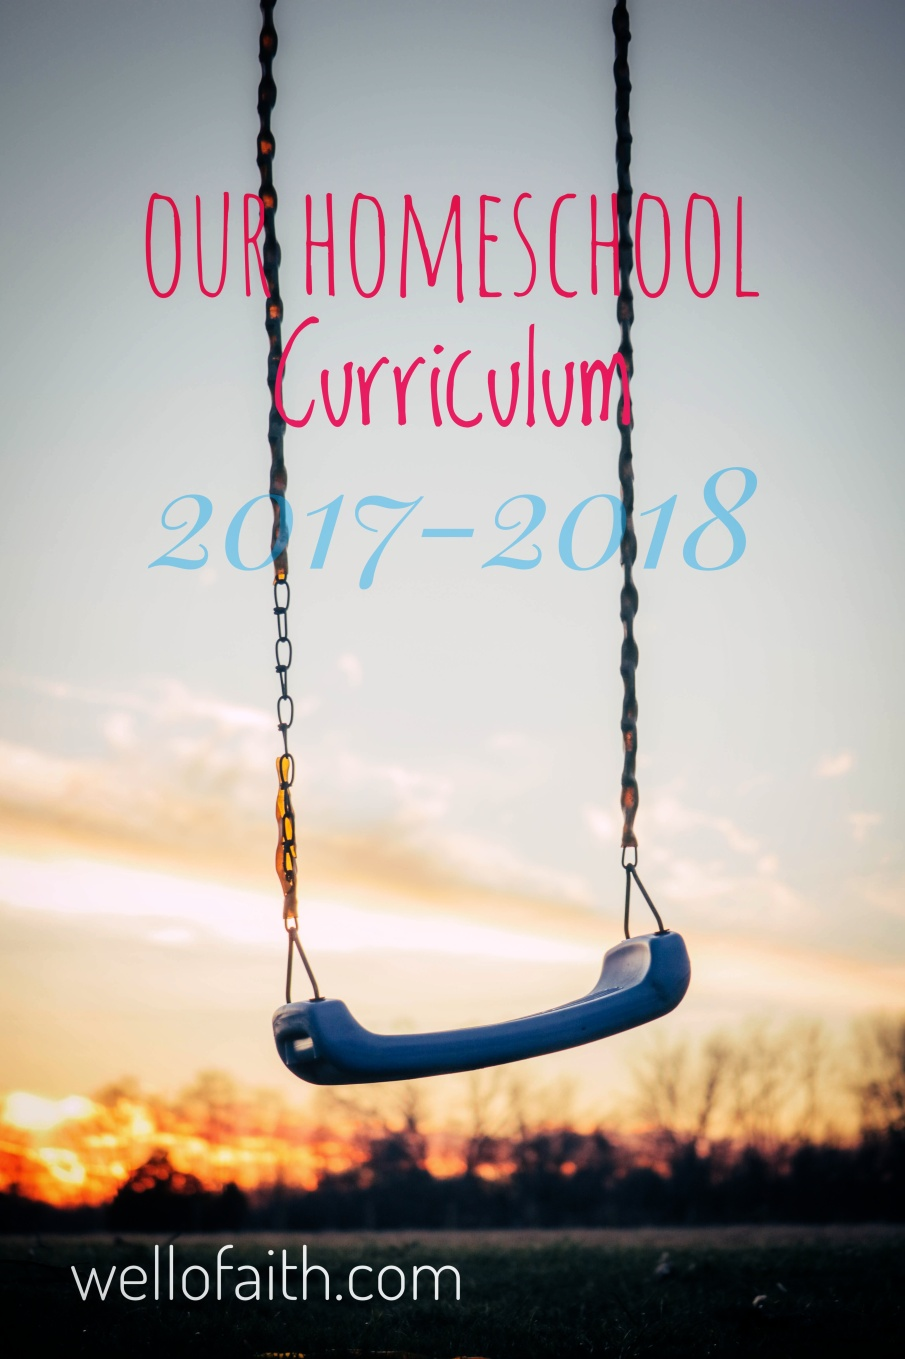 Our Homeschool Curriculum 2017-2018